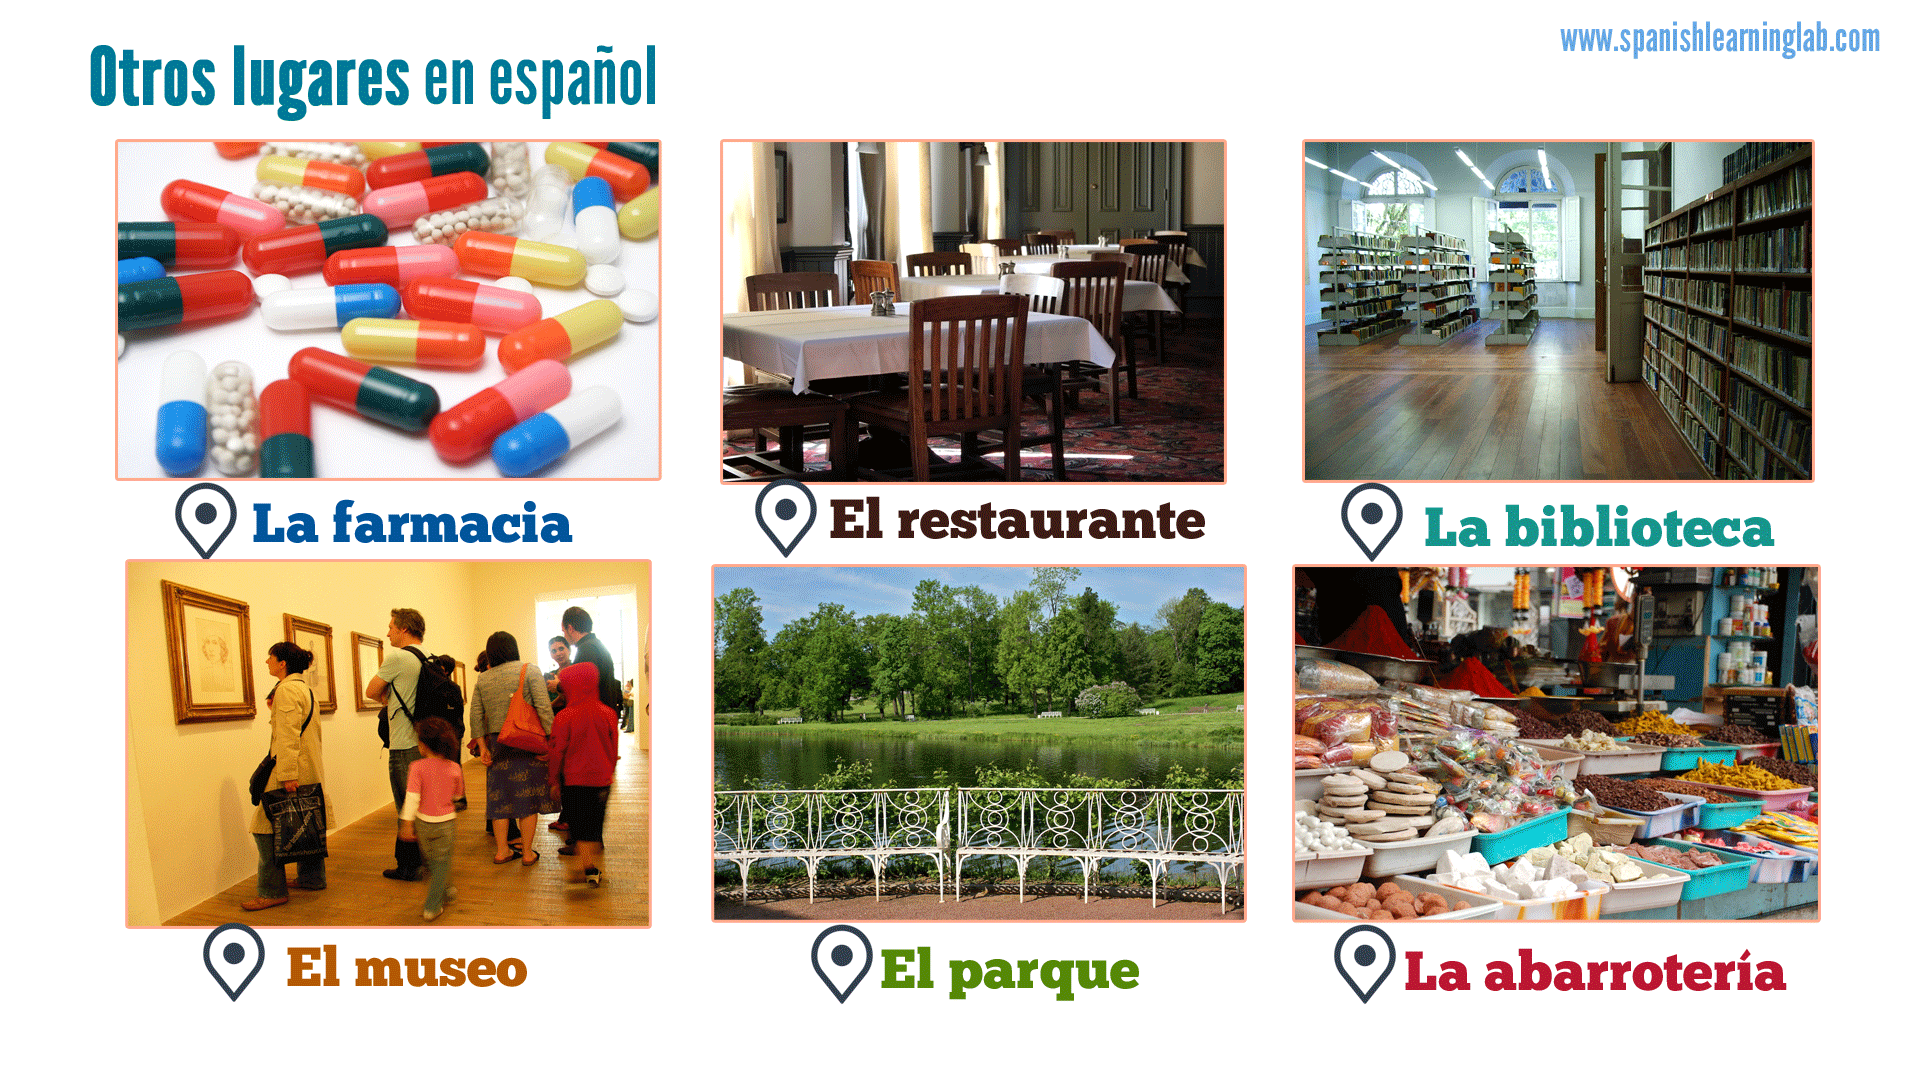 Here Are Other Common Places Around Town In Spanish We